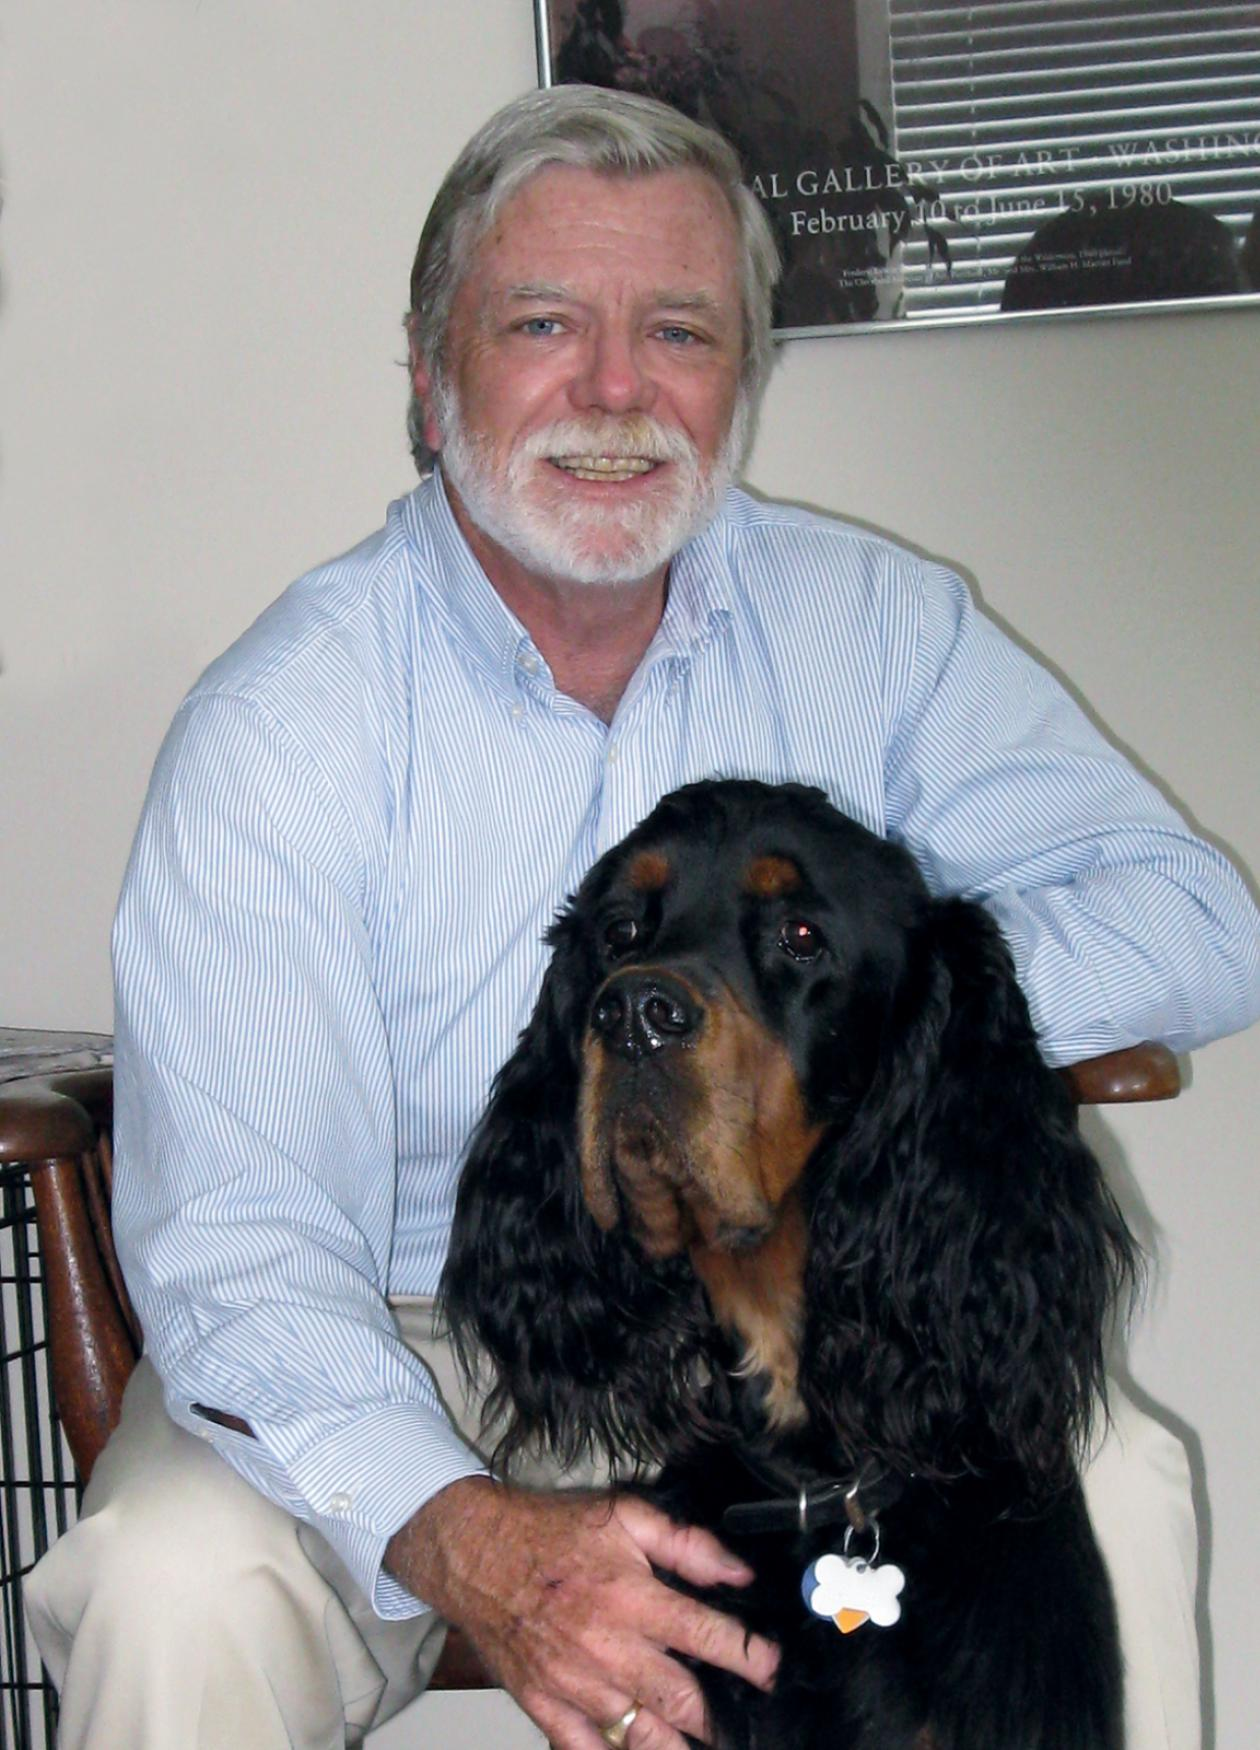 Photograph of man sitting down with dog